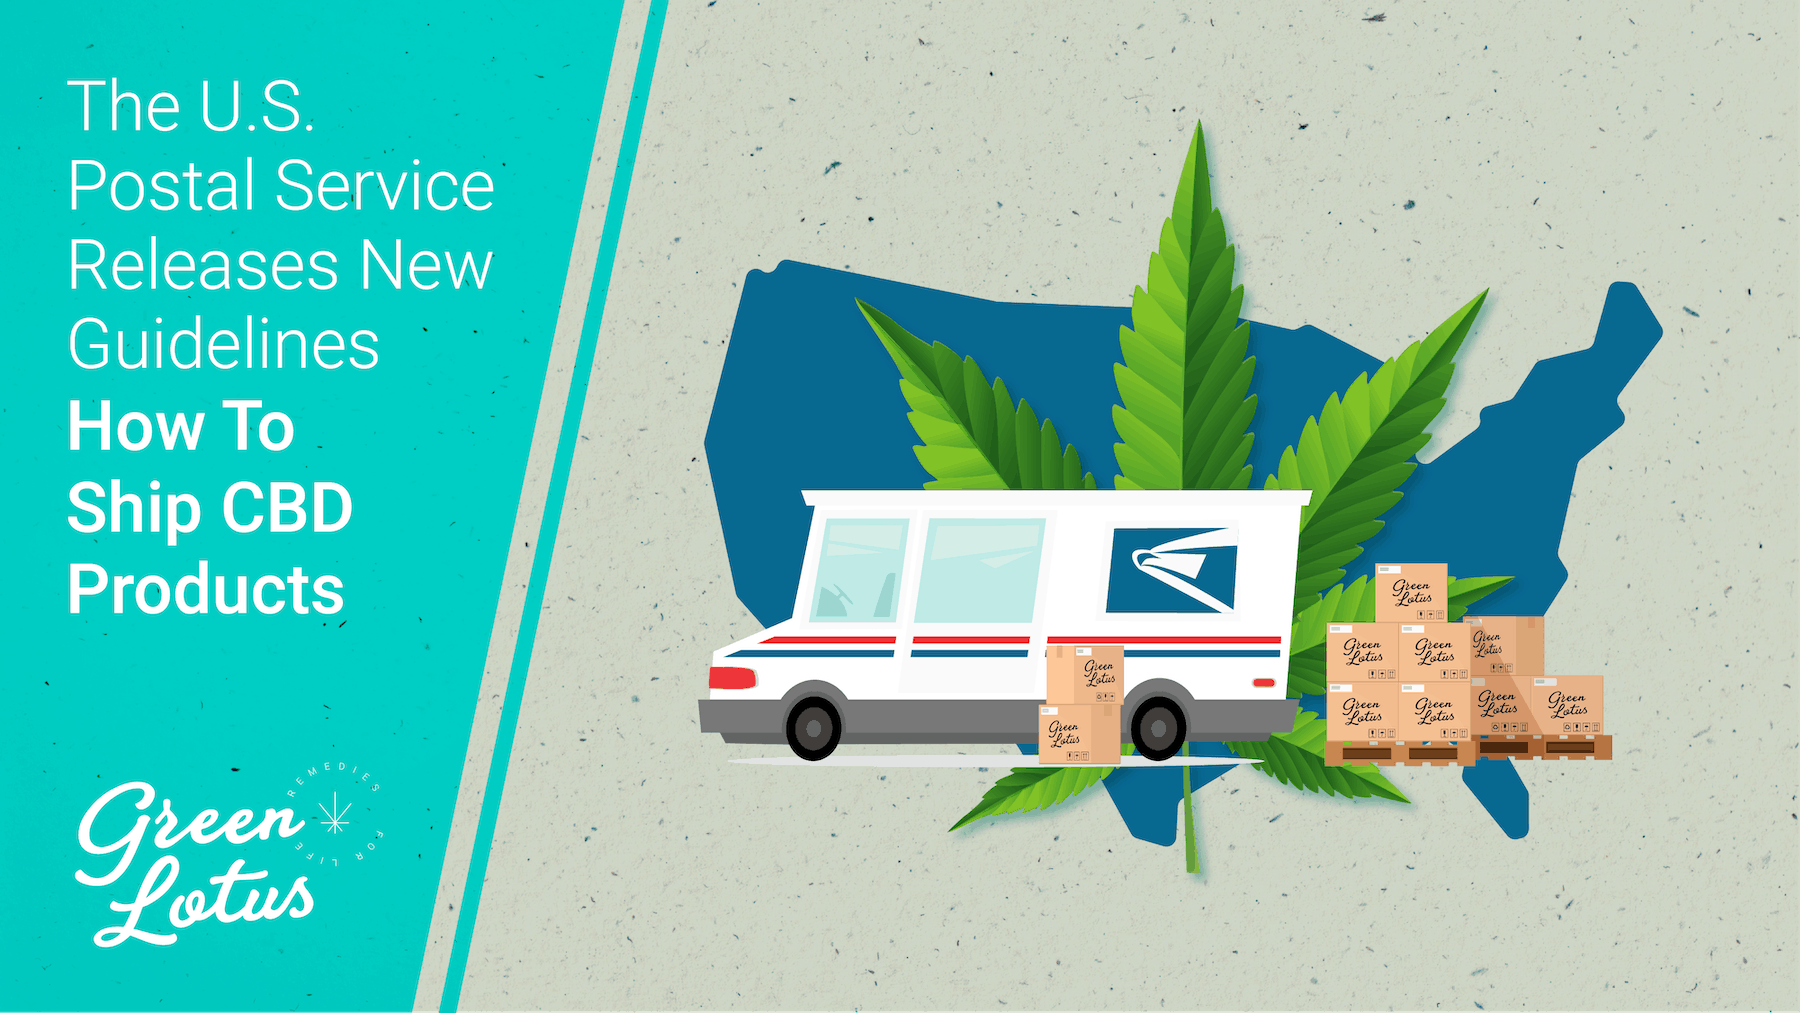 U.S. Postal Service Releases New Guidelines for Shipping CBD Oil